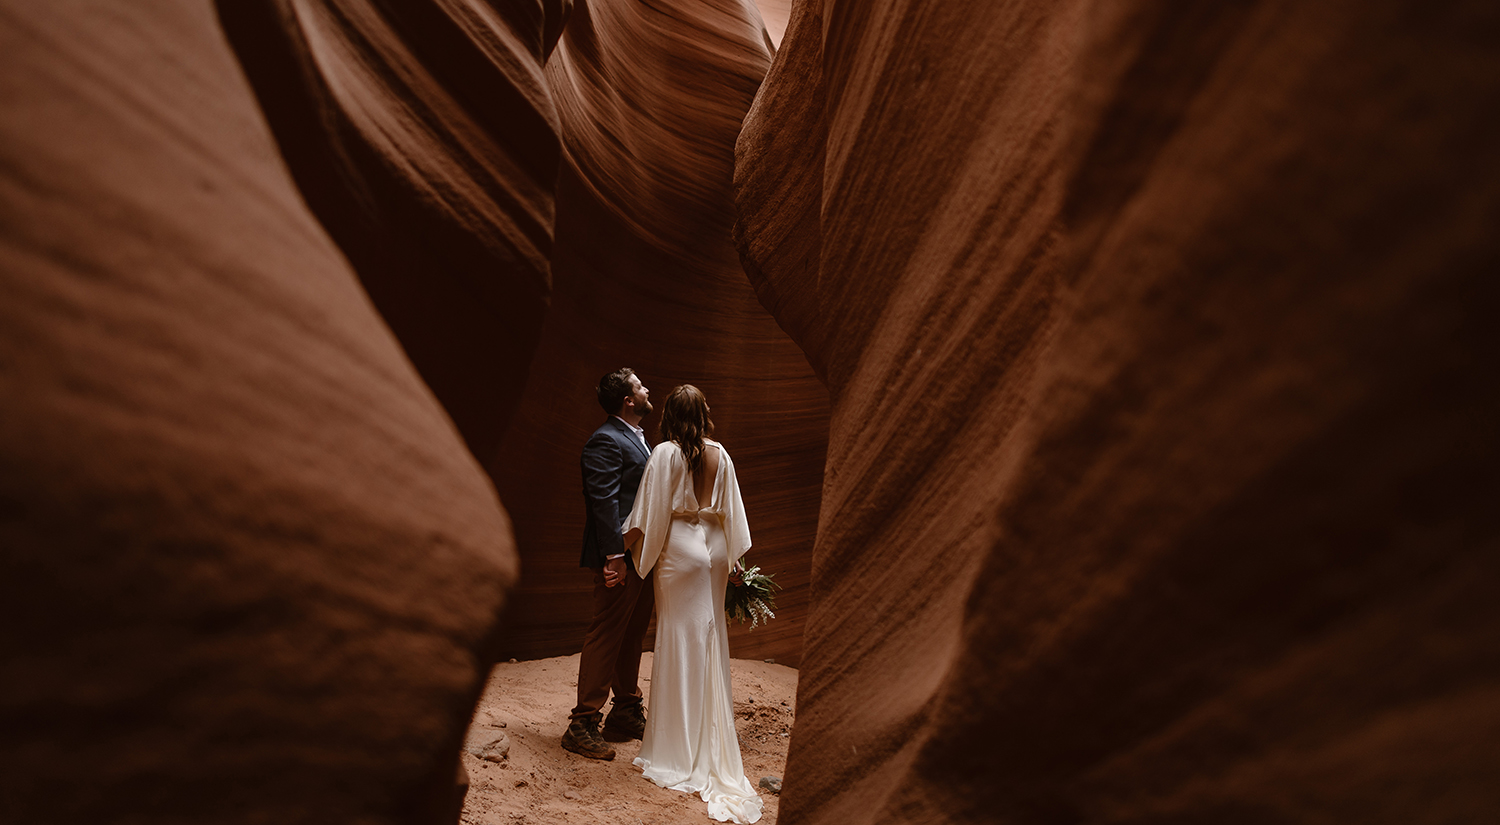 A bride and groom stand in a red rock canyon